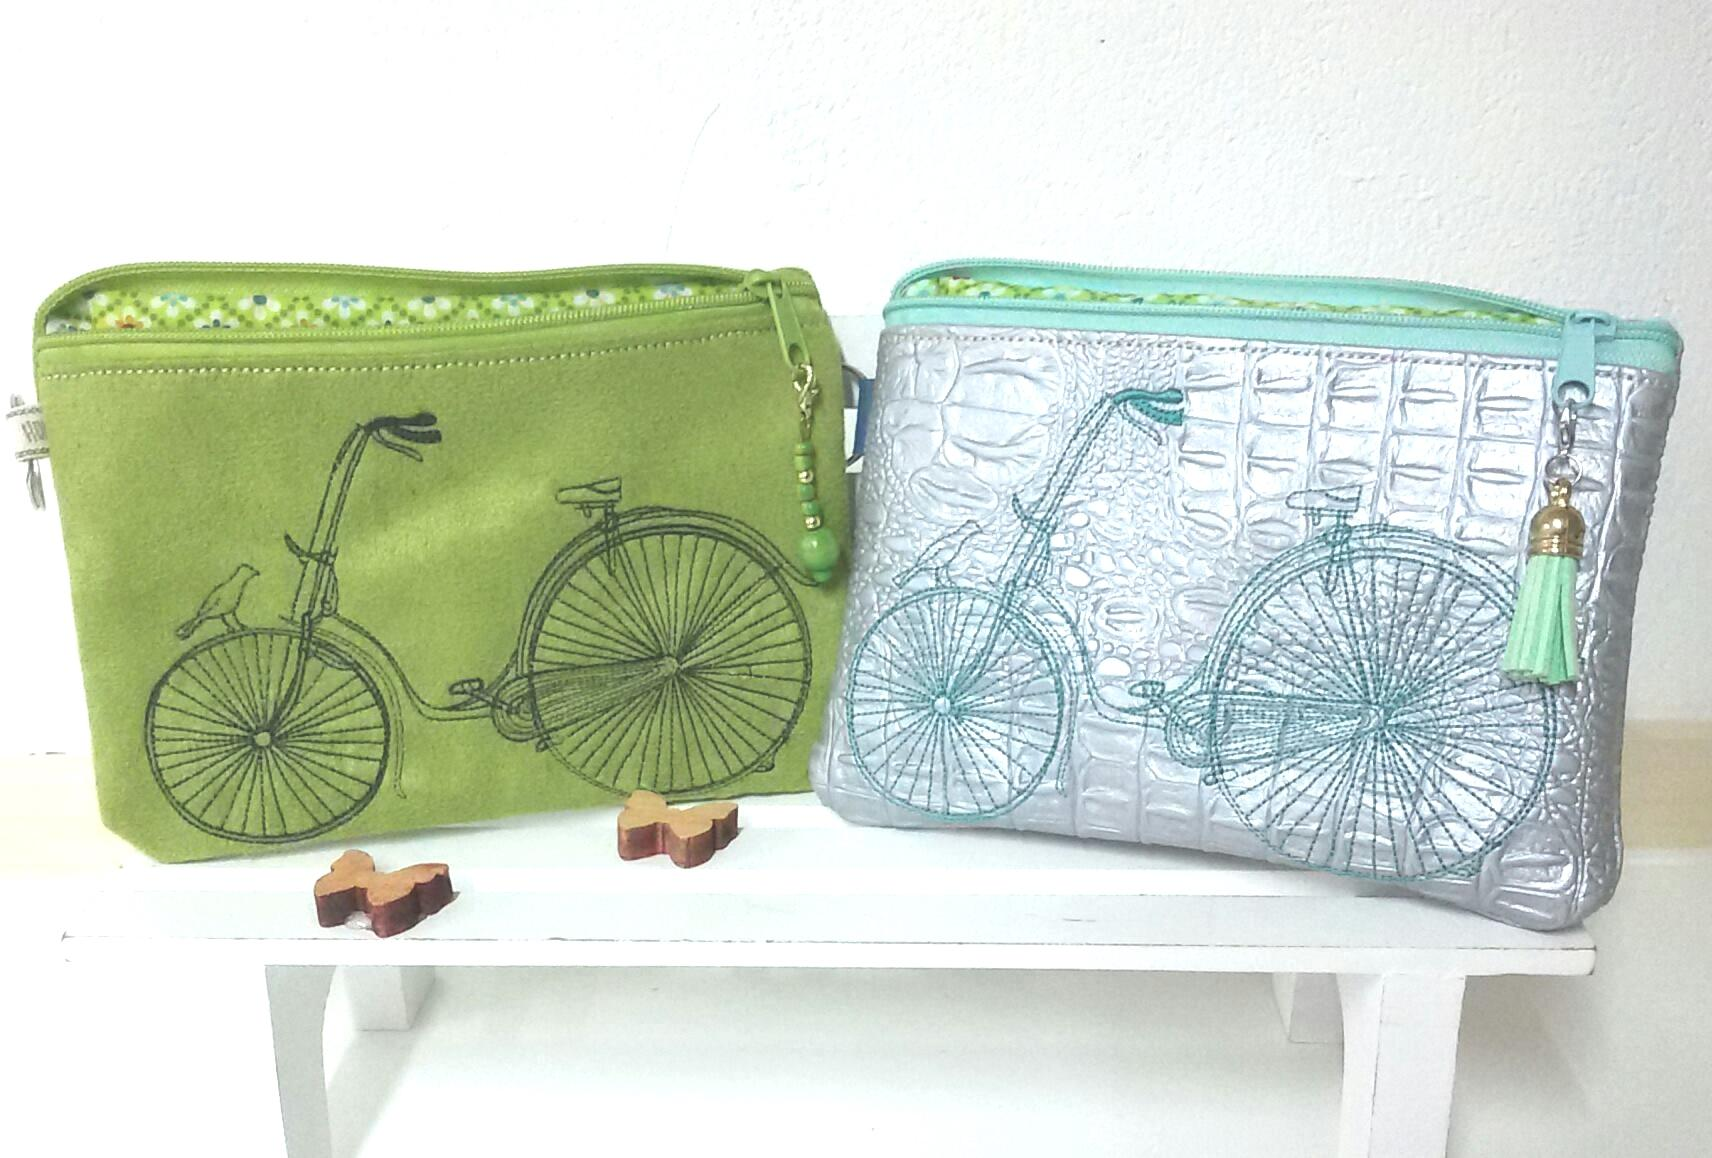 Embroidered handbags with Bikes design